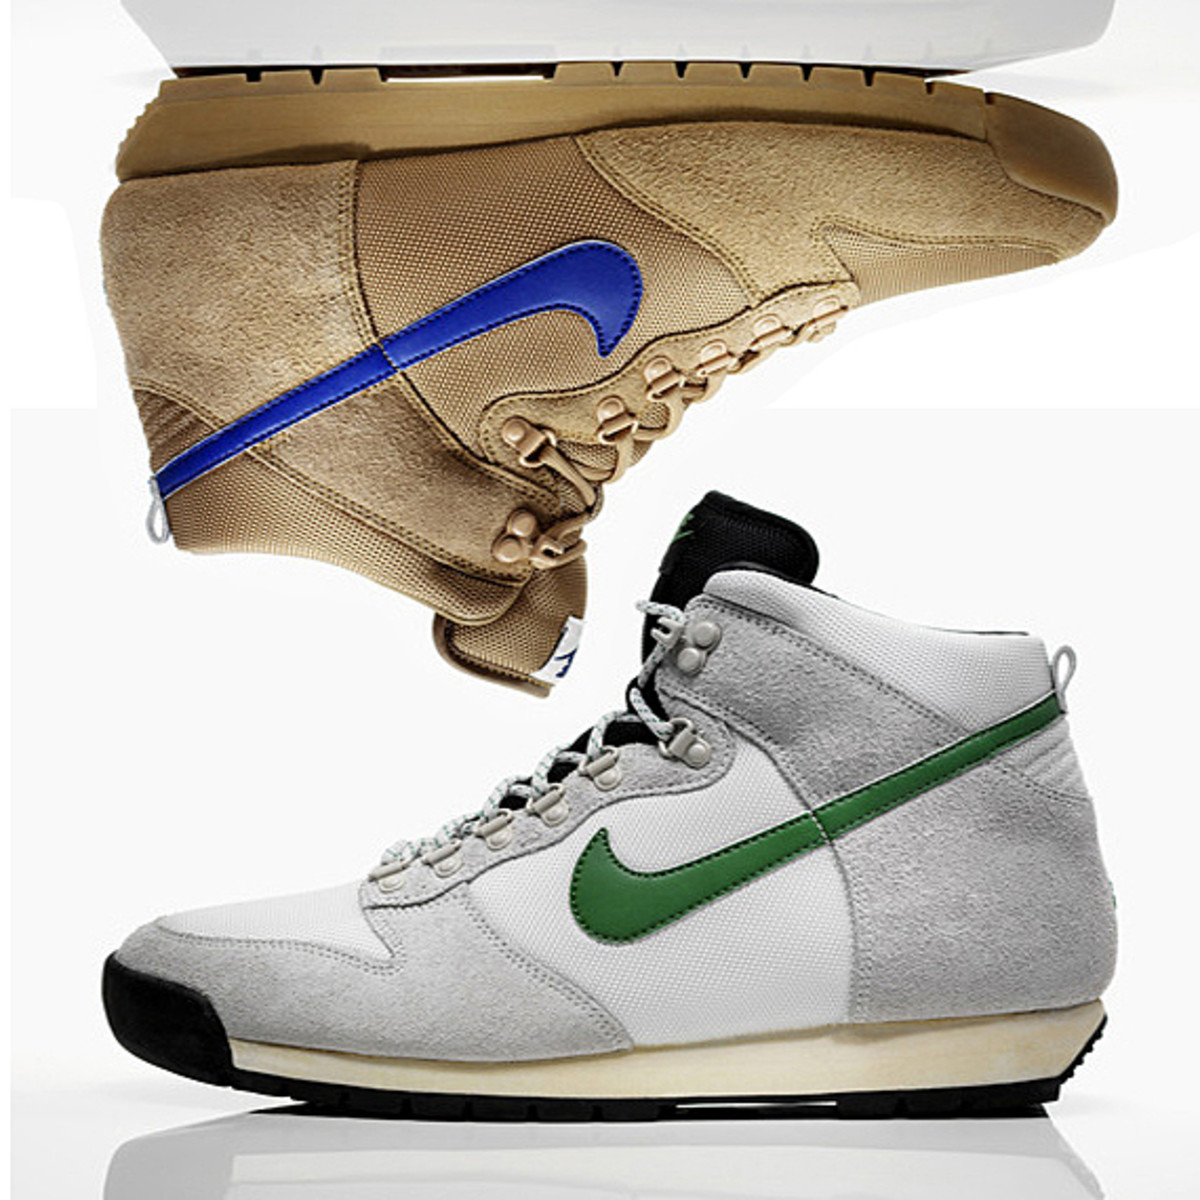 nike-sportswear-lava-dunk-fall-winter-2011-00